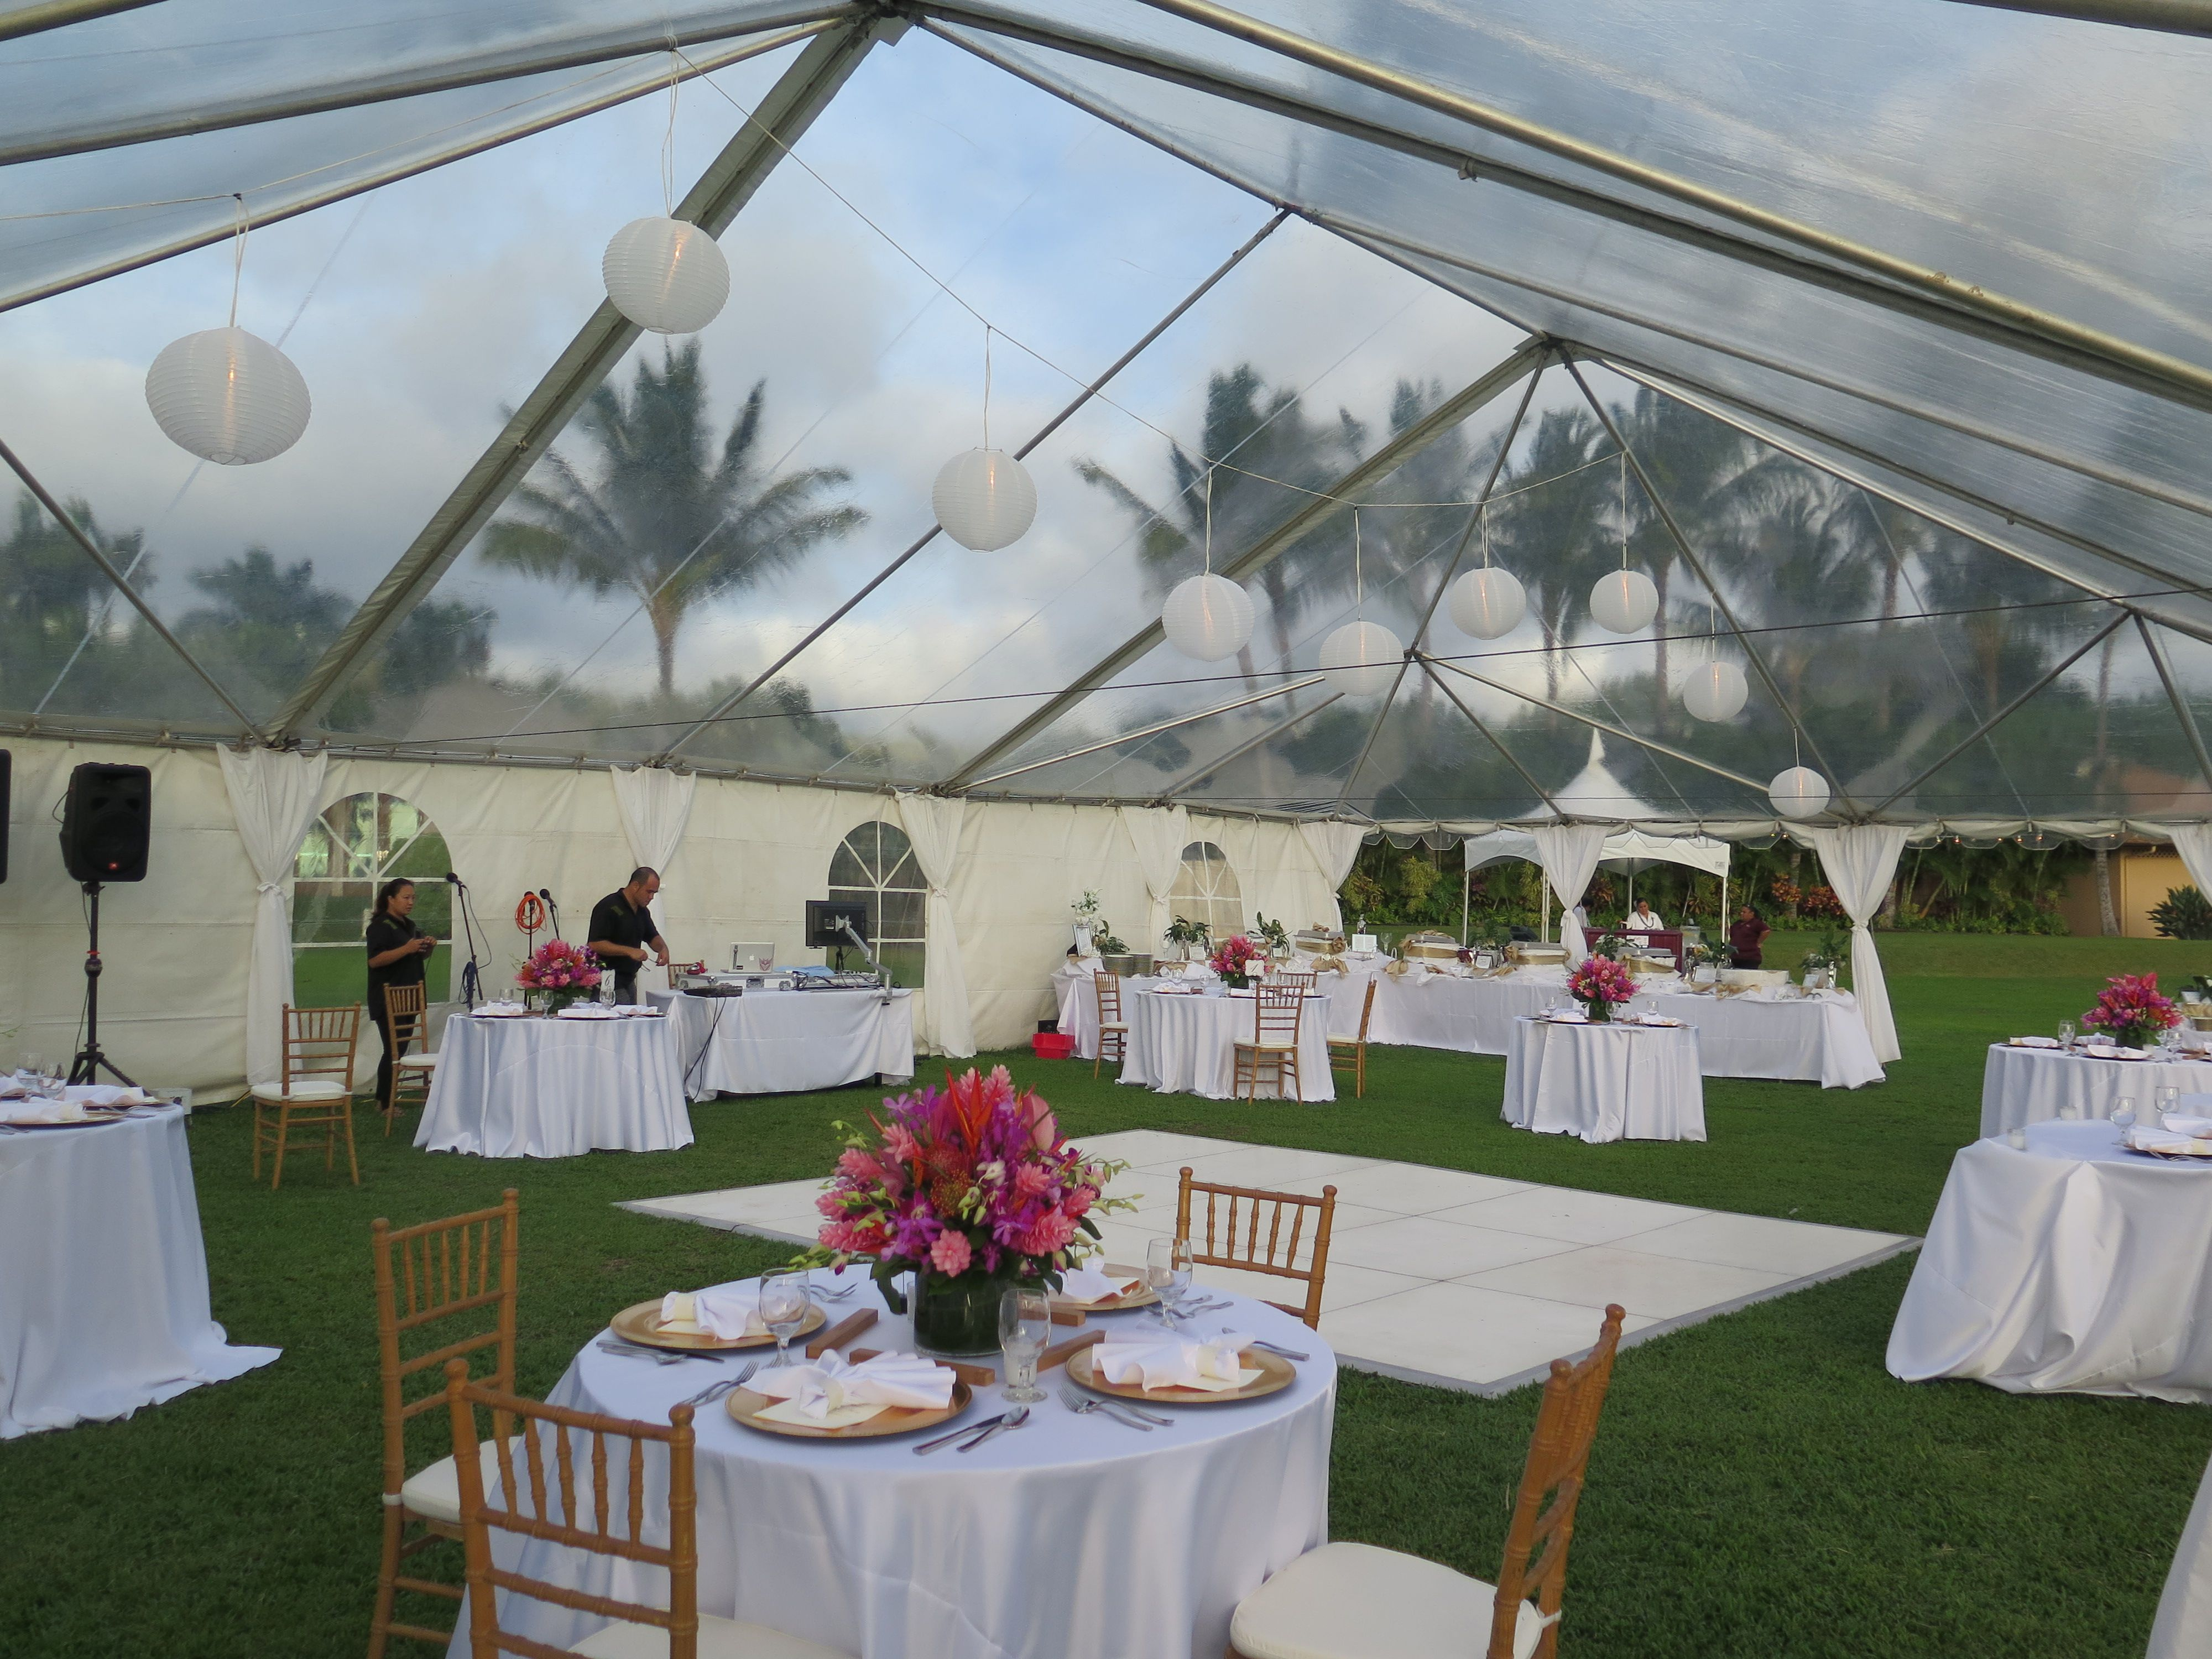 Paradise Cove Wedding Planned By Planner Hawaii Weddings Tori Rogers Flowers The Blooming Pot Location Ocean Lawn